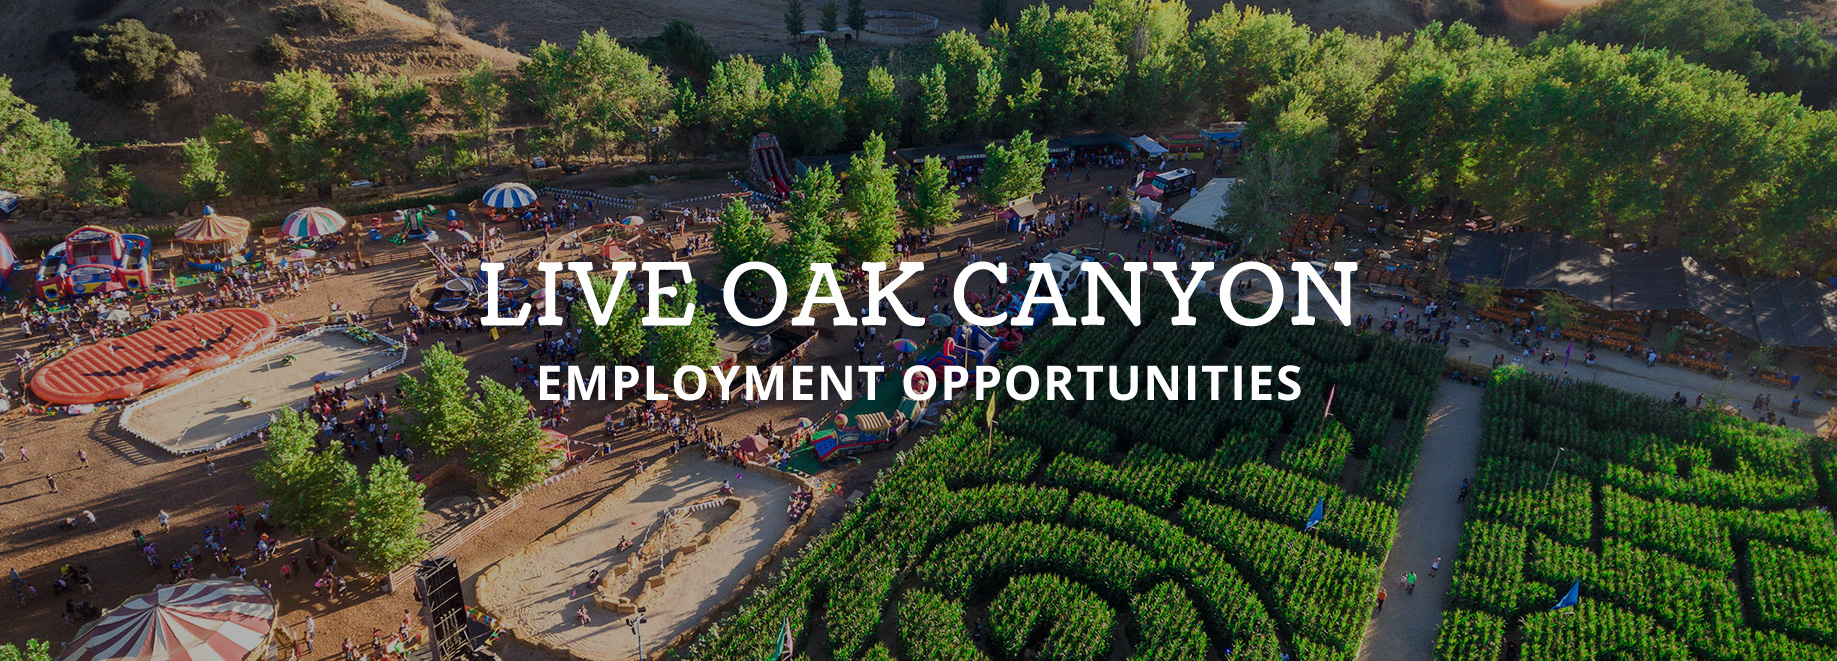 Employment-Opportunities-LiveOak